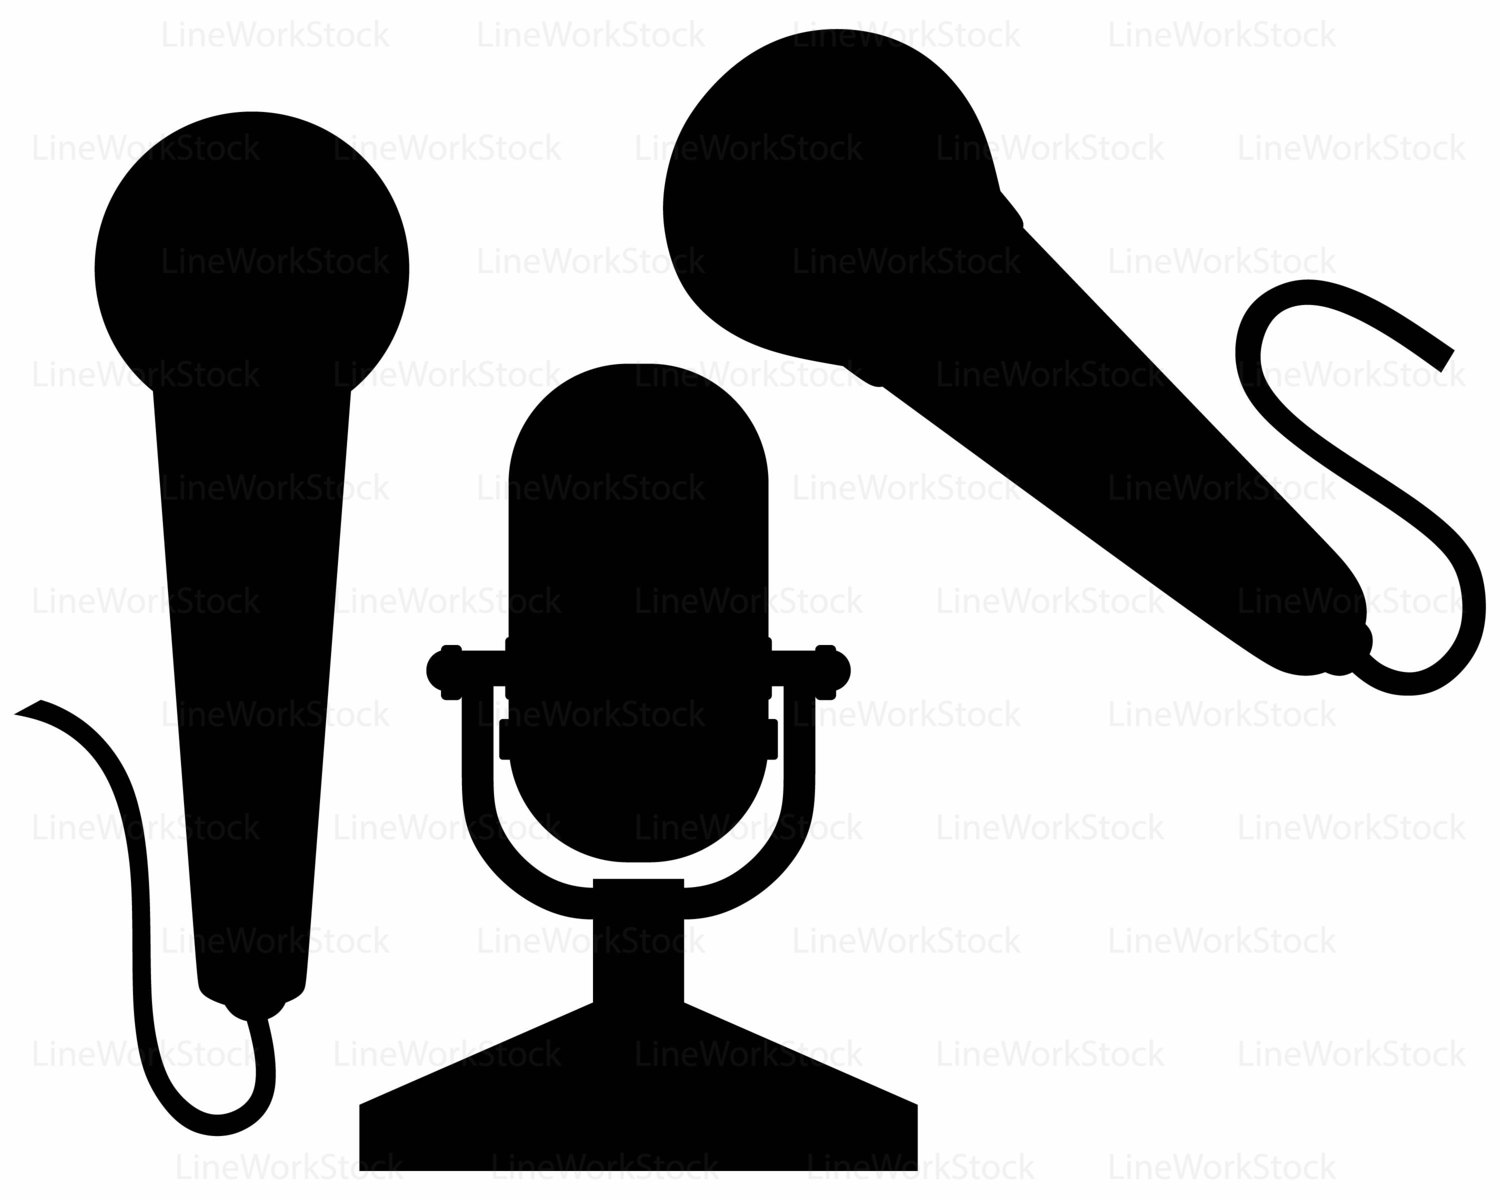 1500x1200 Microphone Svg,microphone Clipart,microphone Svg,microphone